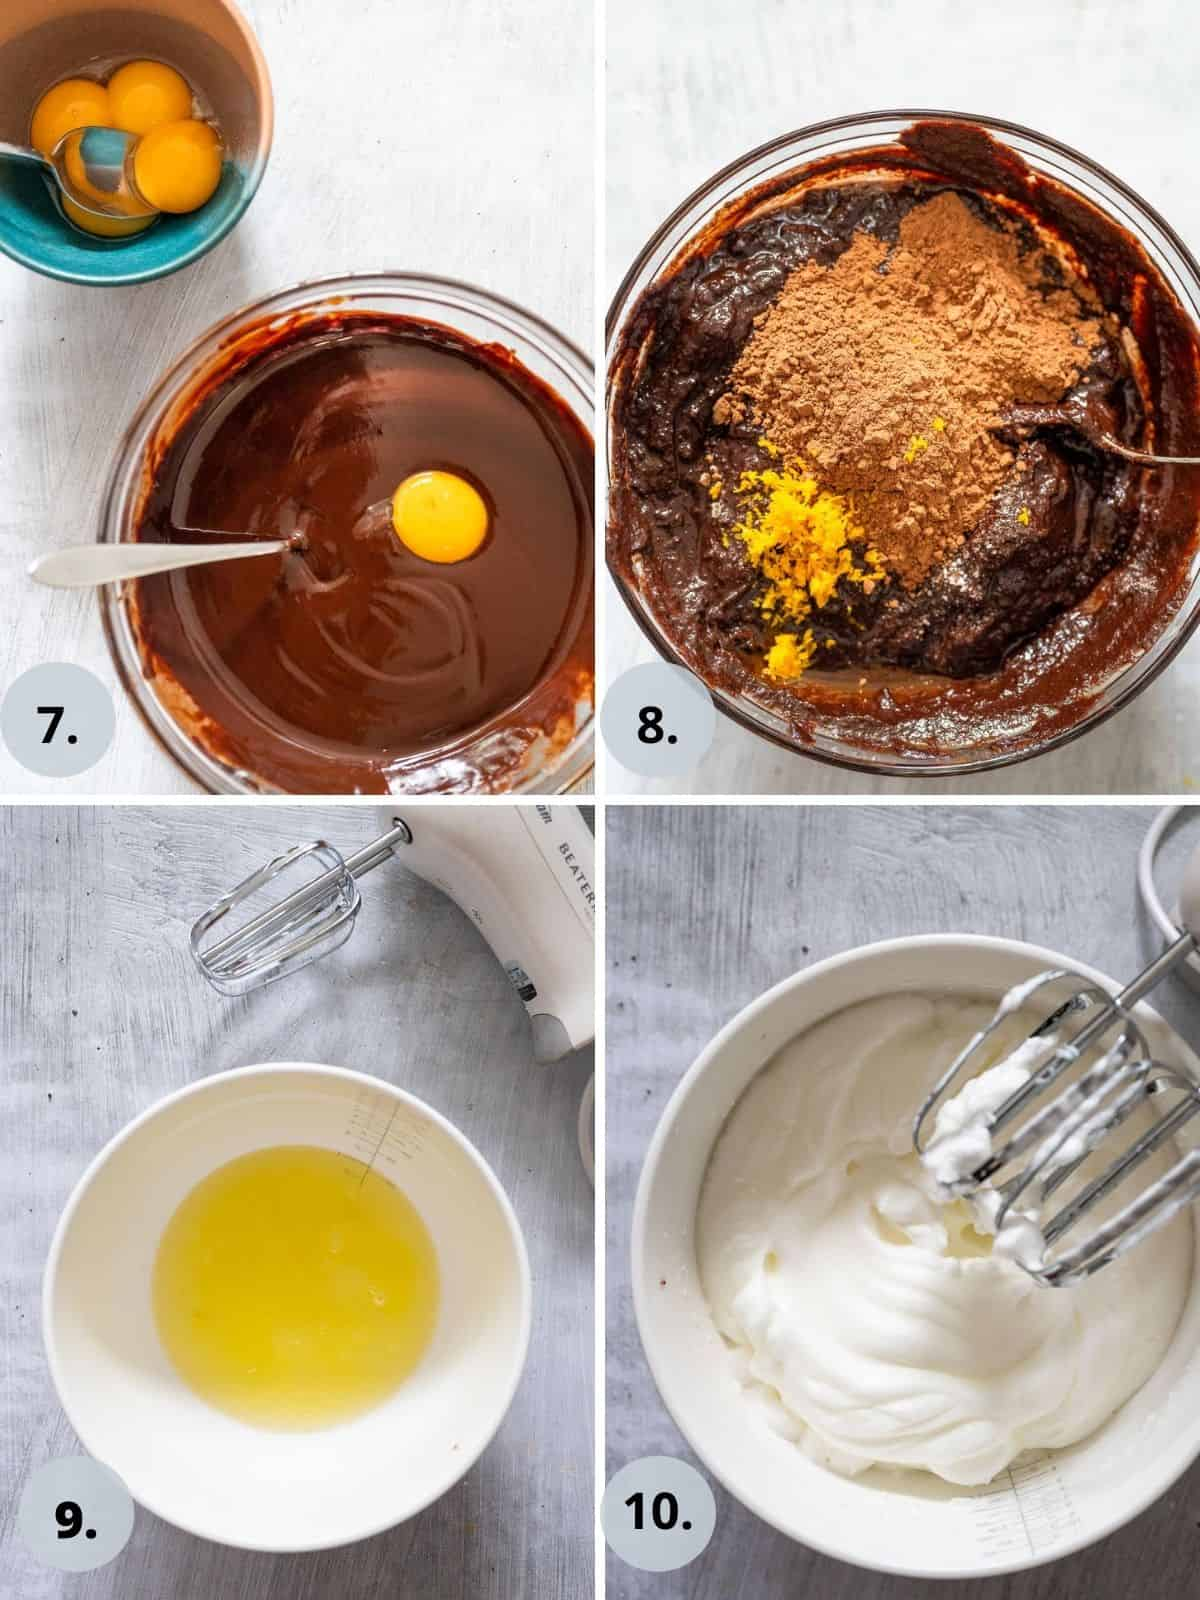 photo collage of 4 steps in the process of makeing a chocolate orange cake